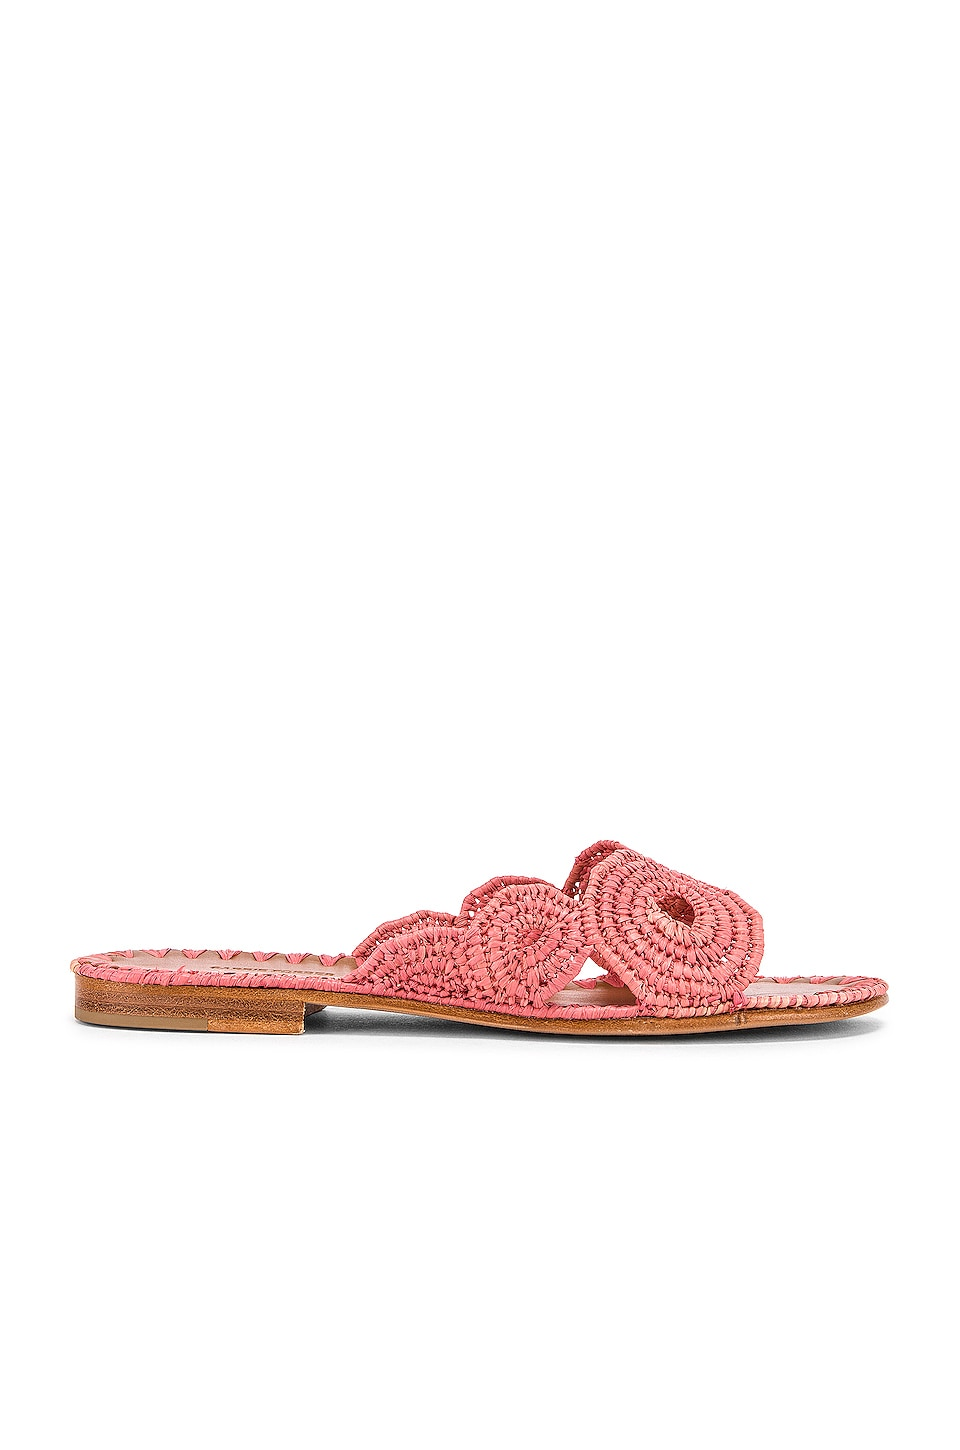 Carrie Forbes Miringi Sandal in Coral